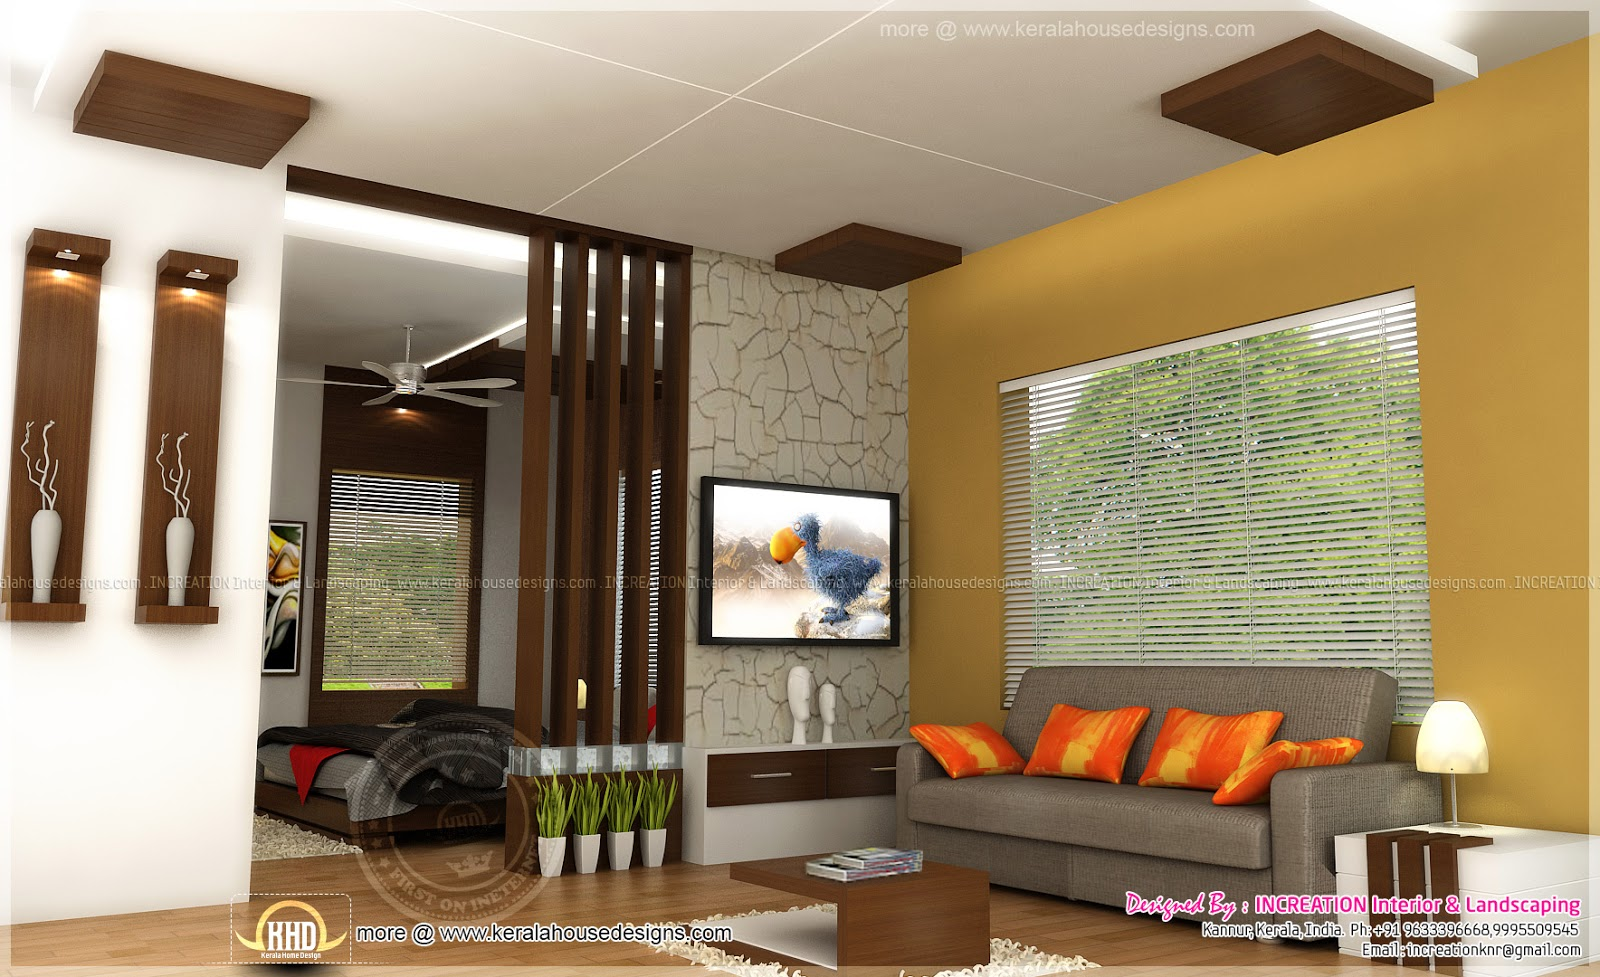 interior designs from kannur kerala home kerala plans top luxury home interior designers in noida fds